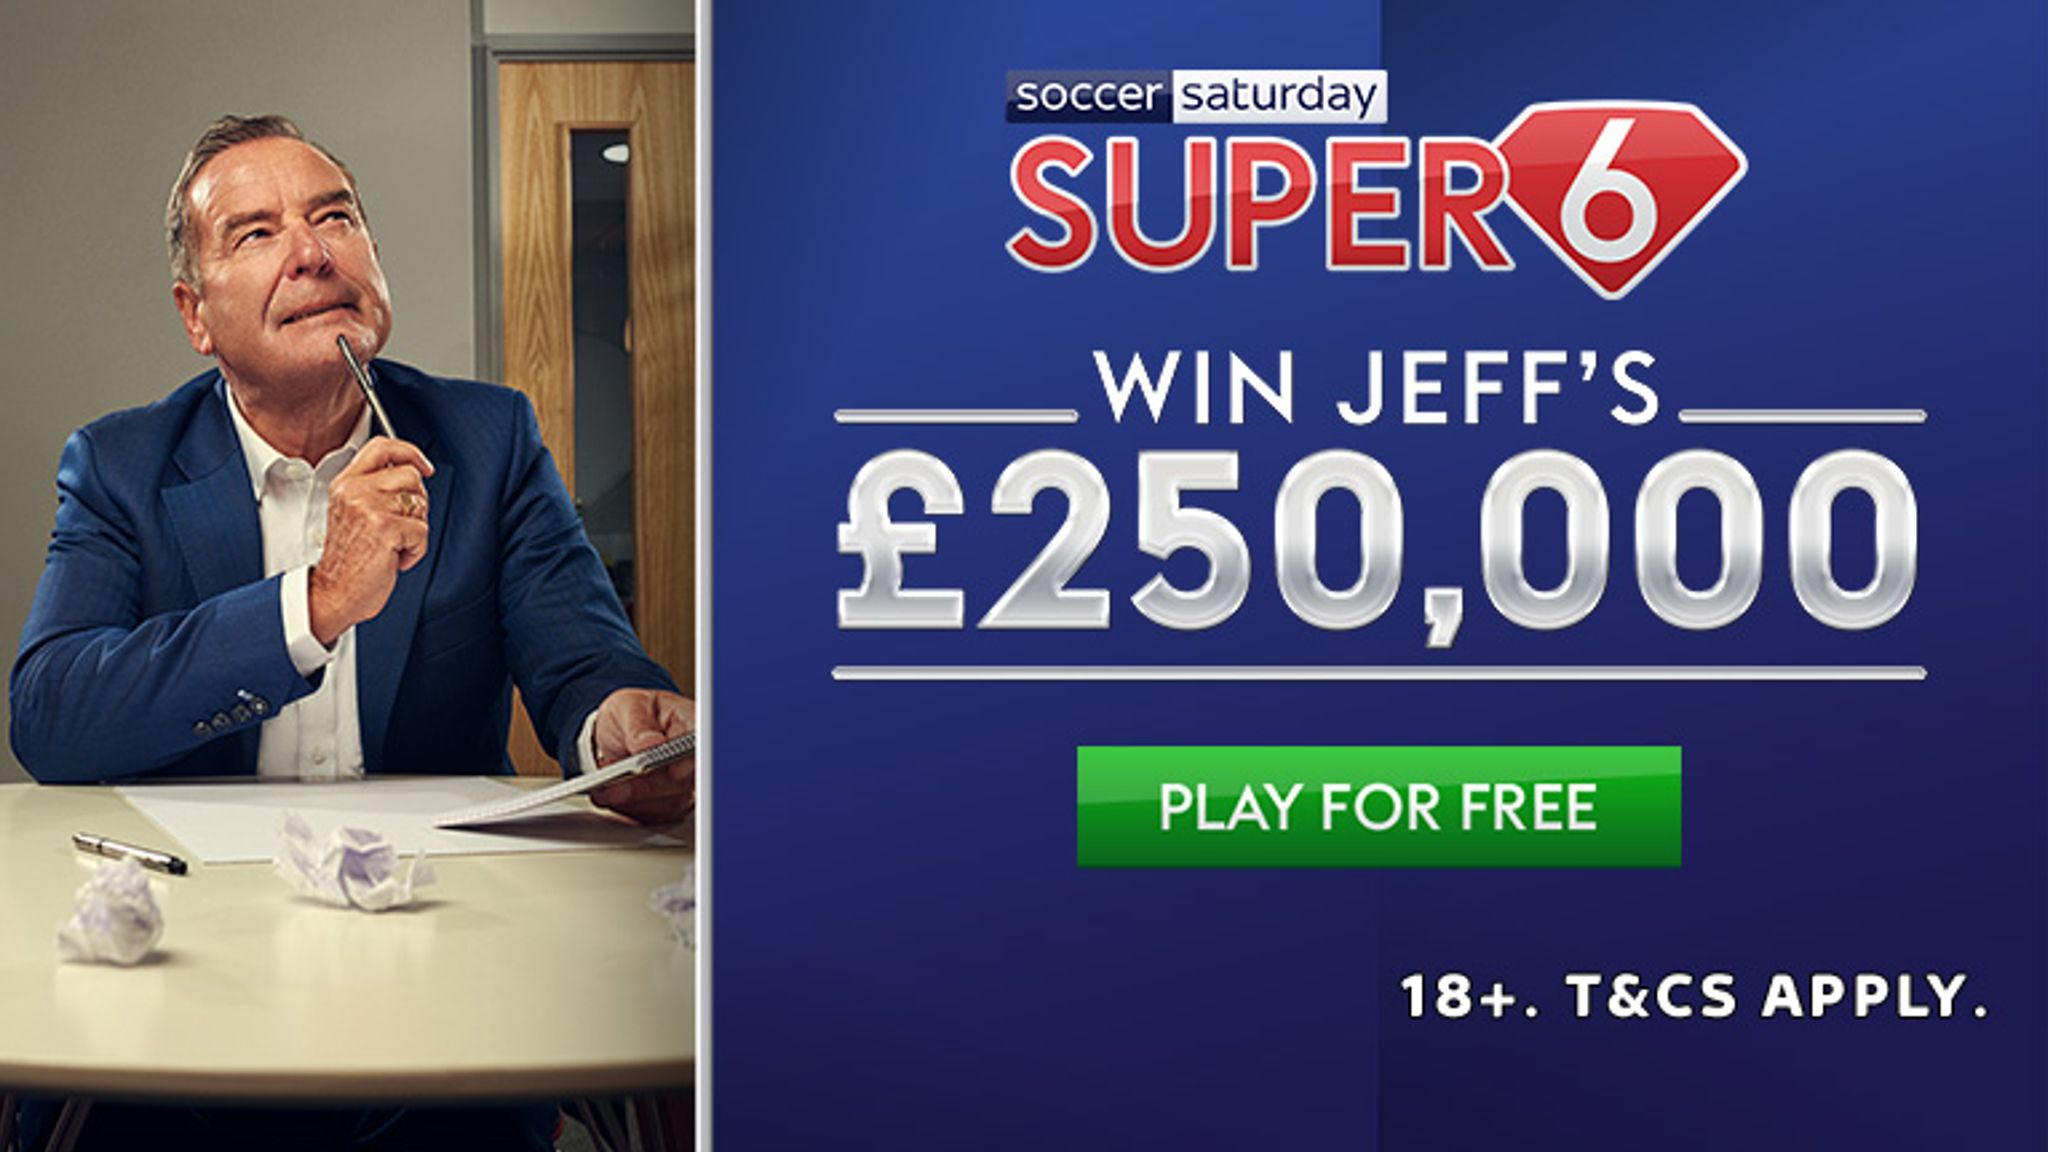 Super 6 soccer betting pulito texture pack 1-3 2-4 betting system